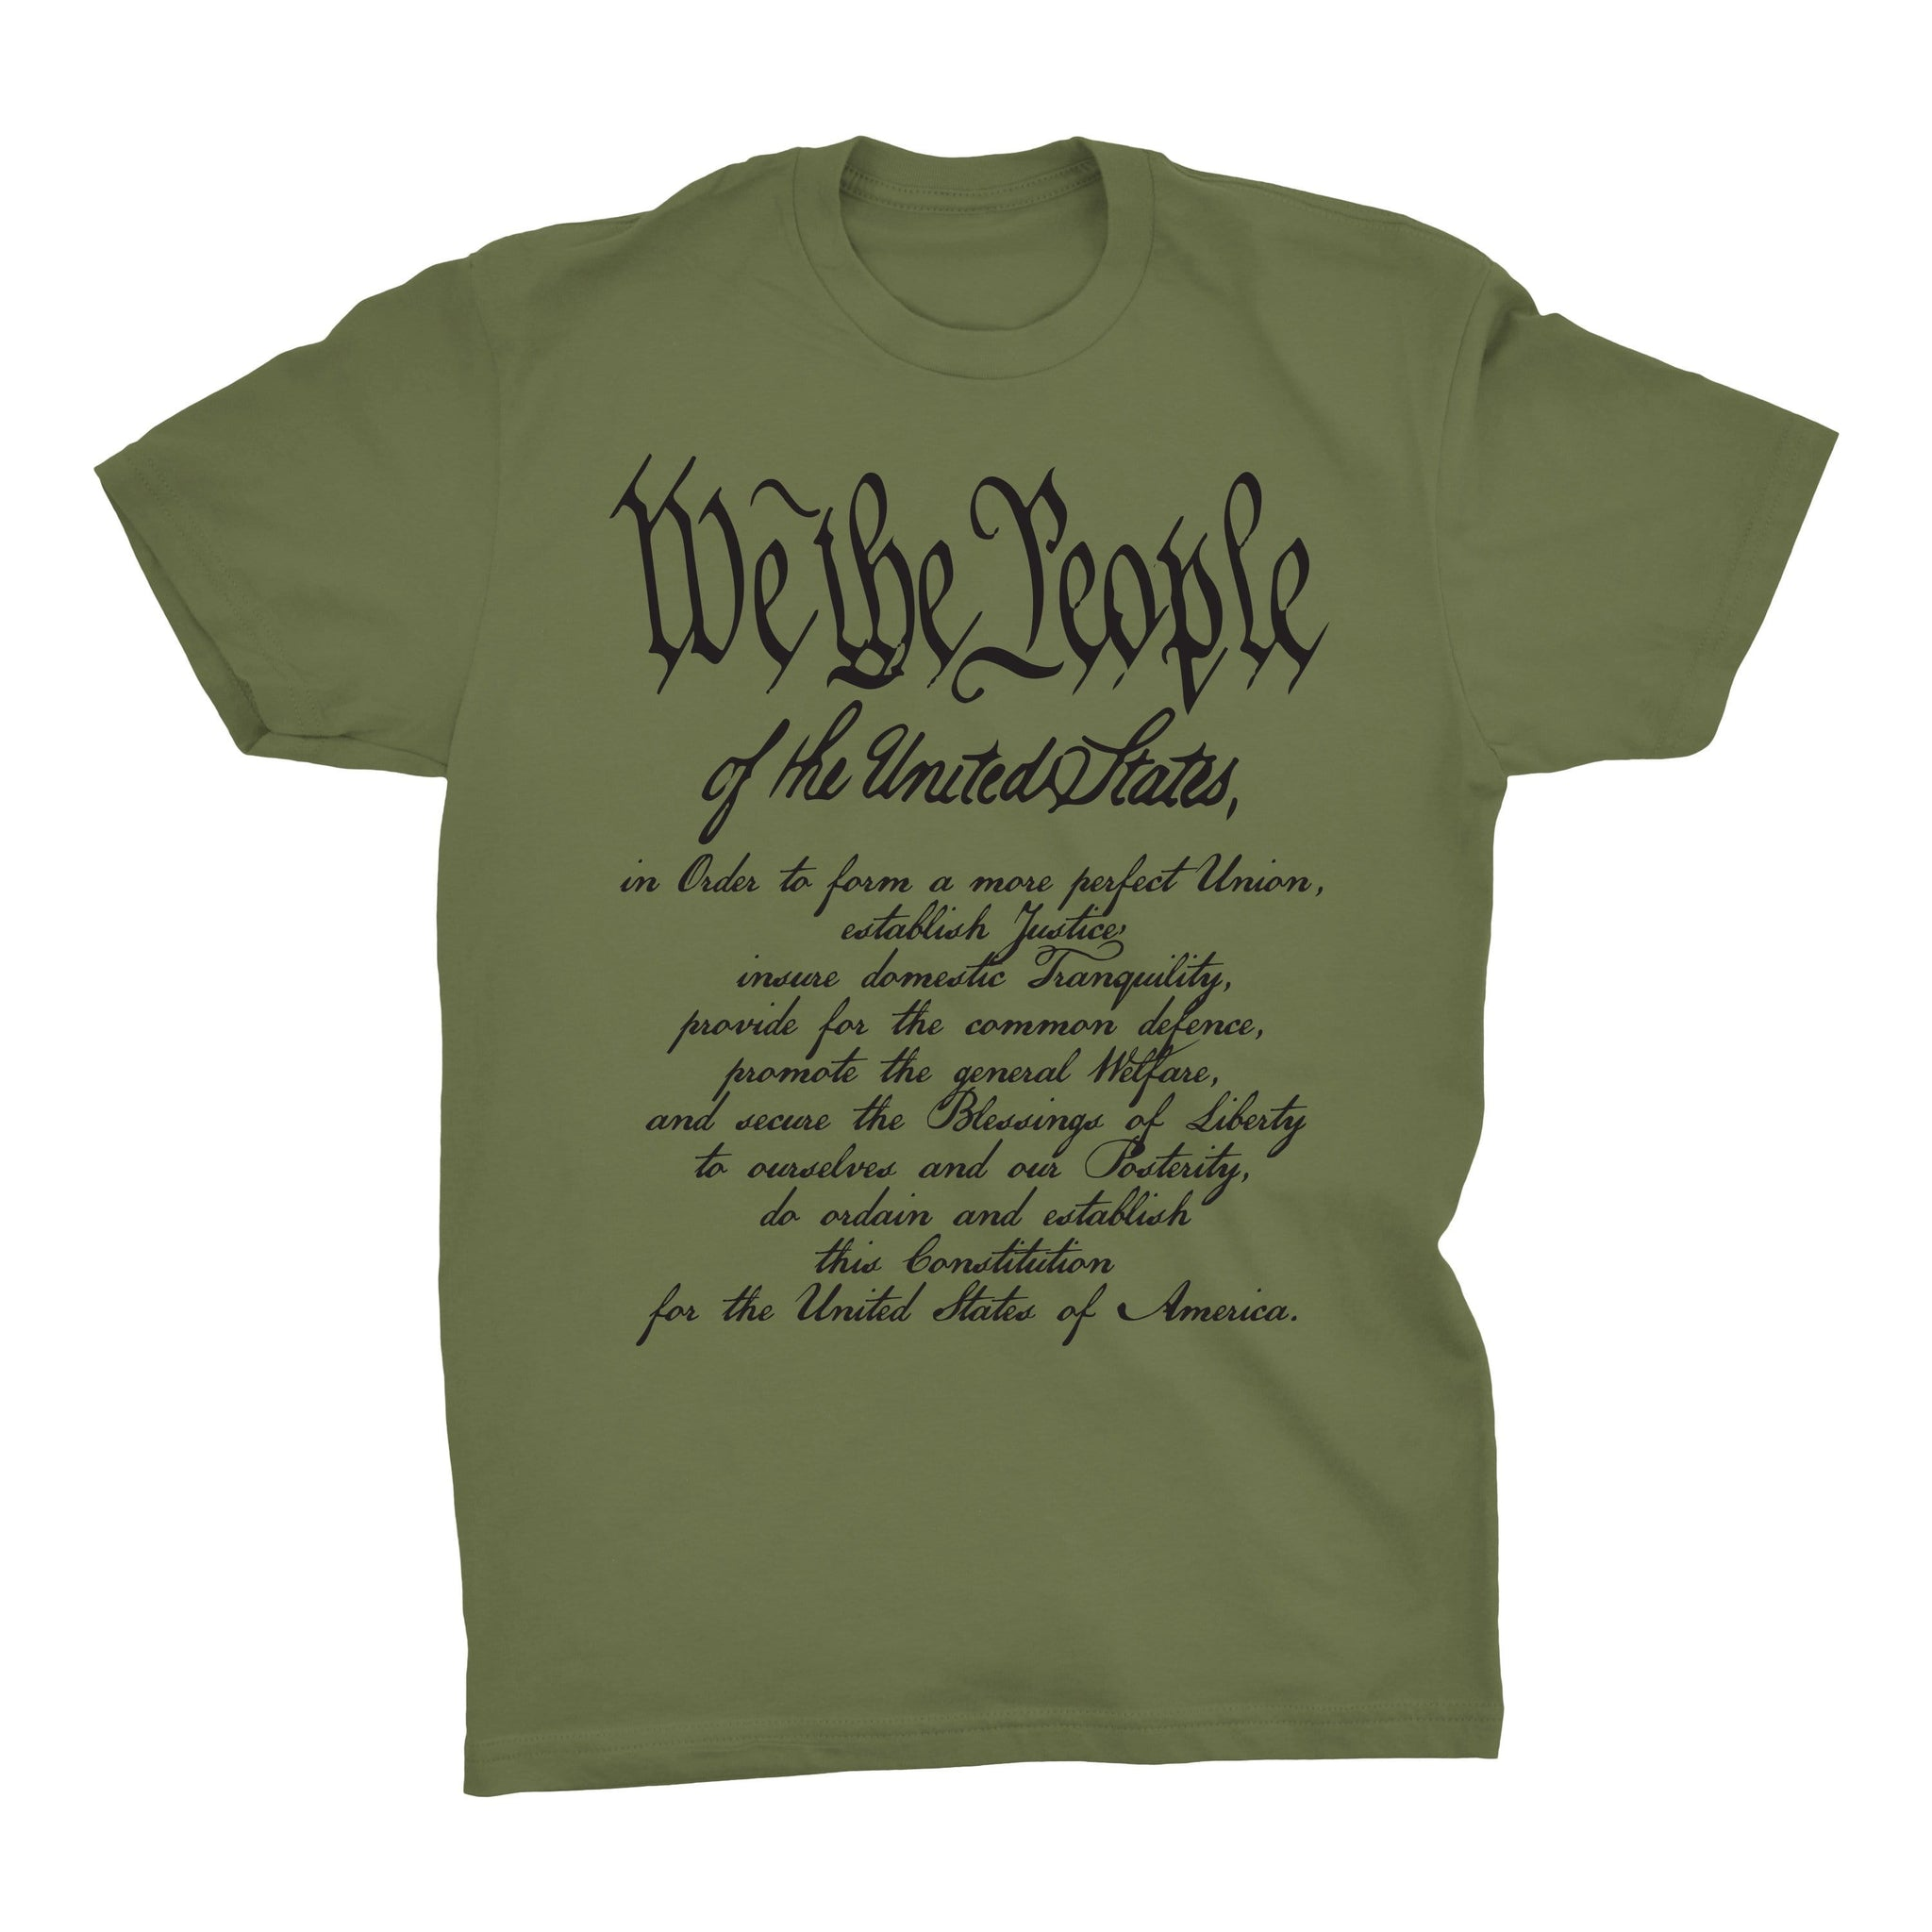 We The People w/ Preamble - Military Green - T-Shirts - Pipe Hitters Union